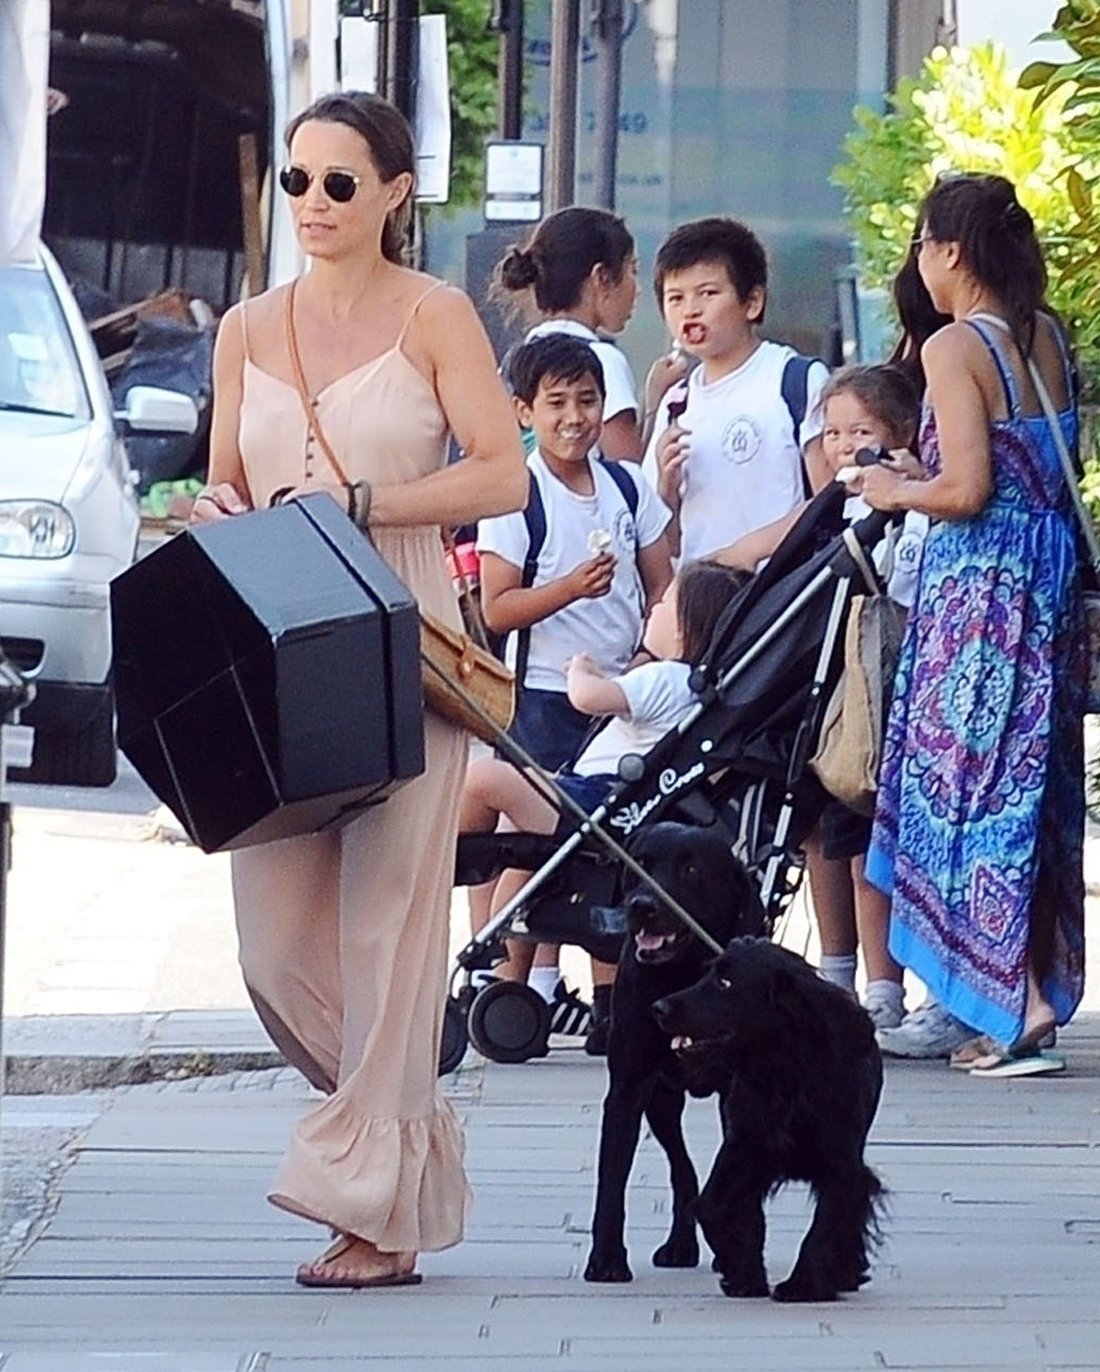 BGUK_1279146 - London, UNITED KINGDOM  - *EXCLUSIVE*  - *WEB MUST CALL FOR PRICING*  Mum-to-be Pippa Matthews looks radiant during her pregnancy in the summer sunshine on the King's Road in Chelsea. Pippa who is expecting her first child with husband James Matthews is spotted walking her dog and wore a long peach dress holding a big gift box in hand.  Pictured: Pippa Matthews - Pippa Middleton    *UK Clients - Pictures Containing Children Please Pixelate Face Prior To Publication*, Image: 376859447, License: Rights-managed, Restrictions: , Model Release: no, Credit line: Profimedia, Xposurephotos